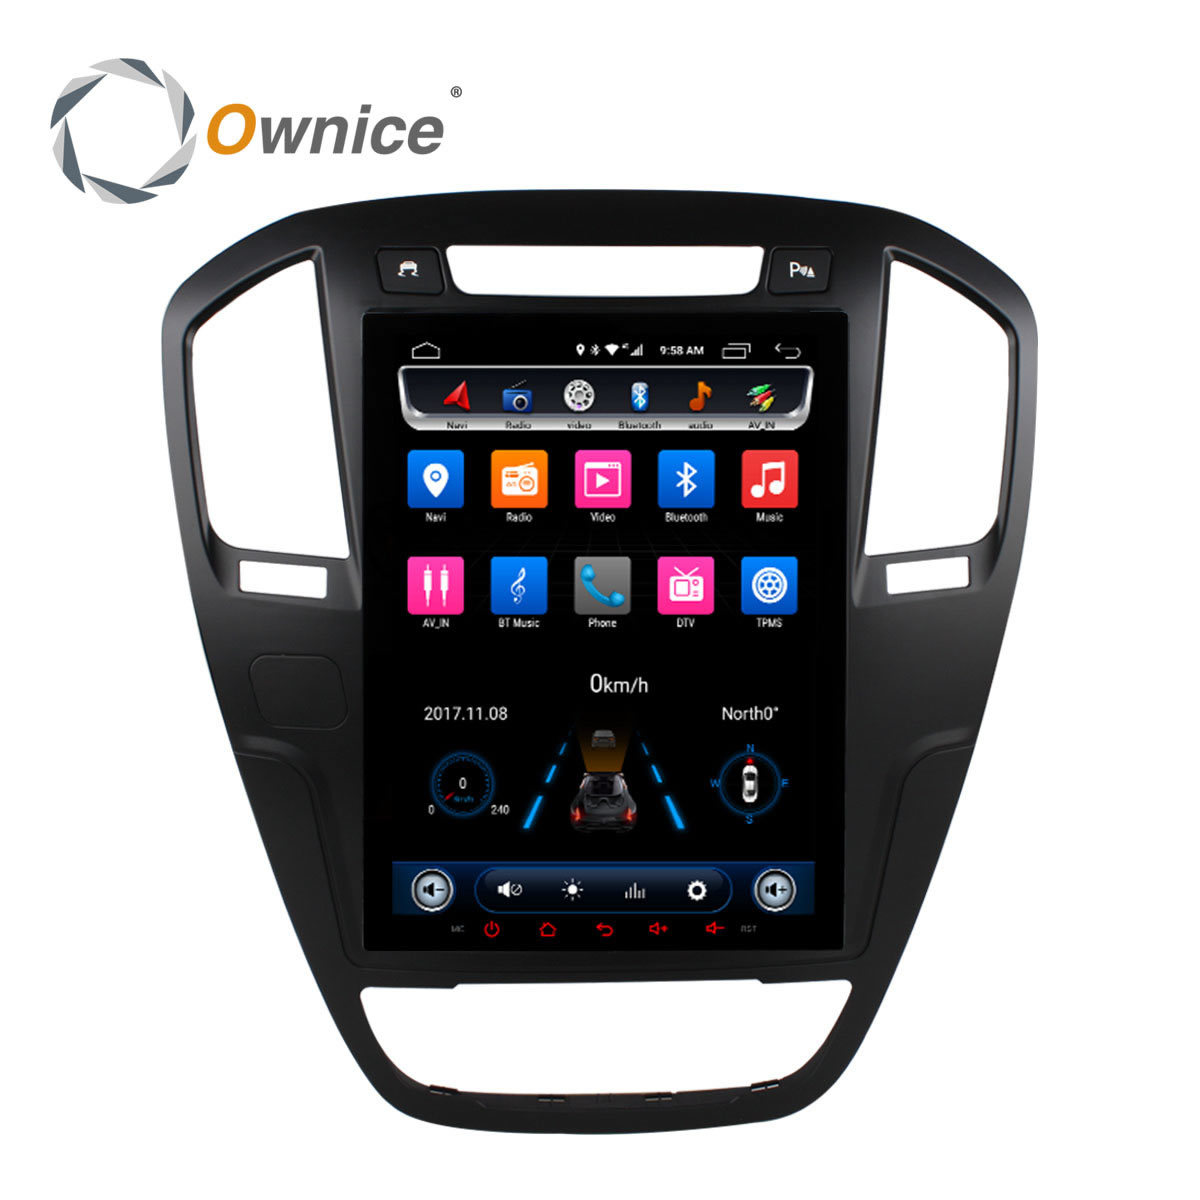 Octa Core 10.4 9.7 Vertical IPS 2.5D Screen Android 6.0 Car DVD Radio for BUICK Regal 2009 - 2013 Support 32G ROM 4G SIM Card